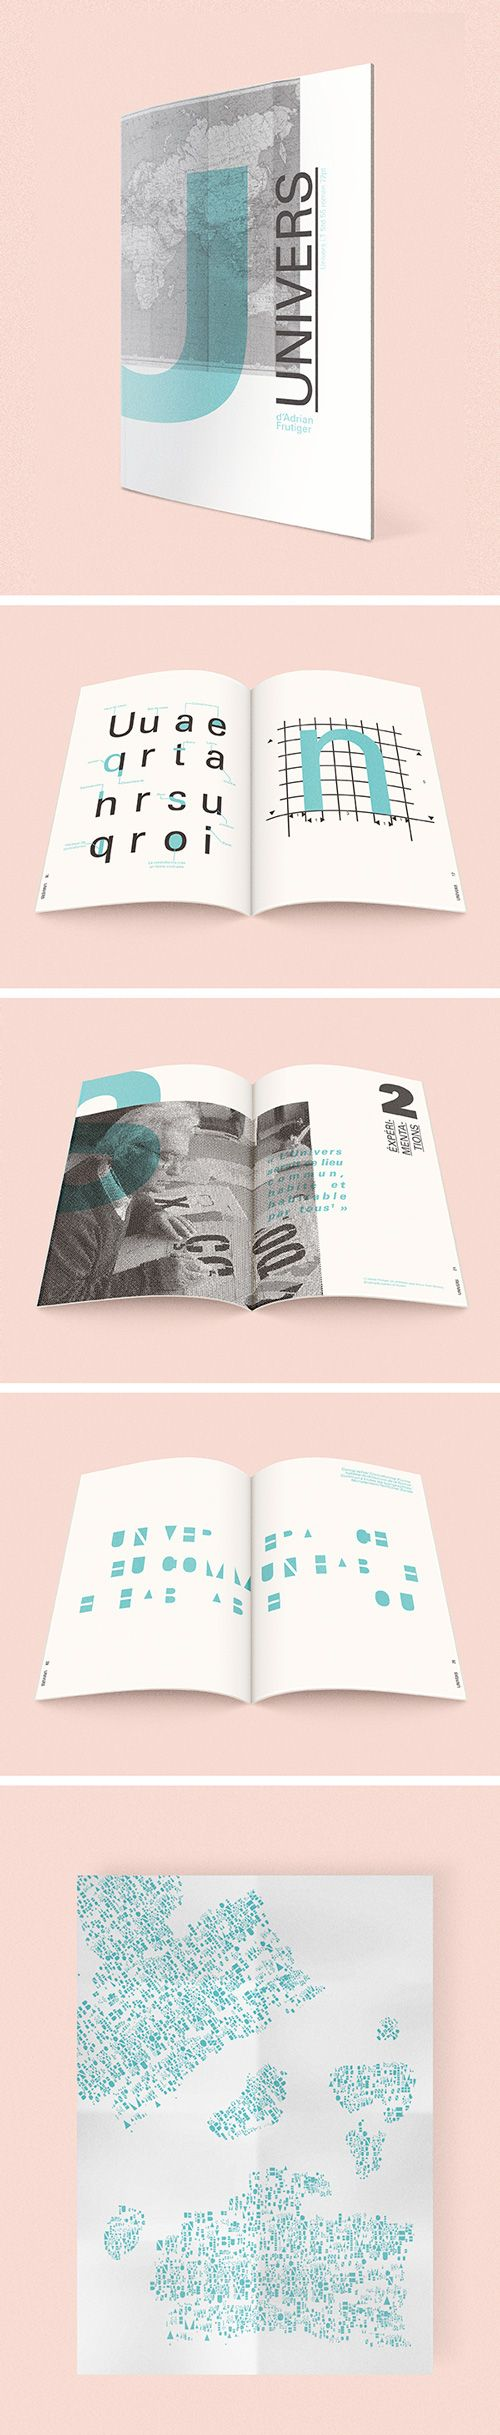 Font collection - Univers - Adrian Frutiger on Behance